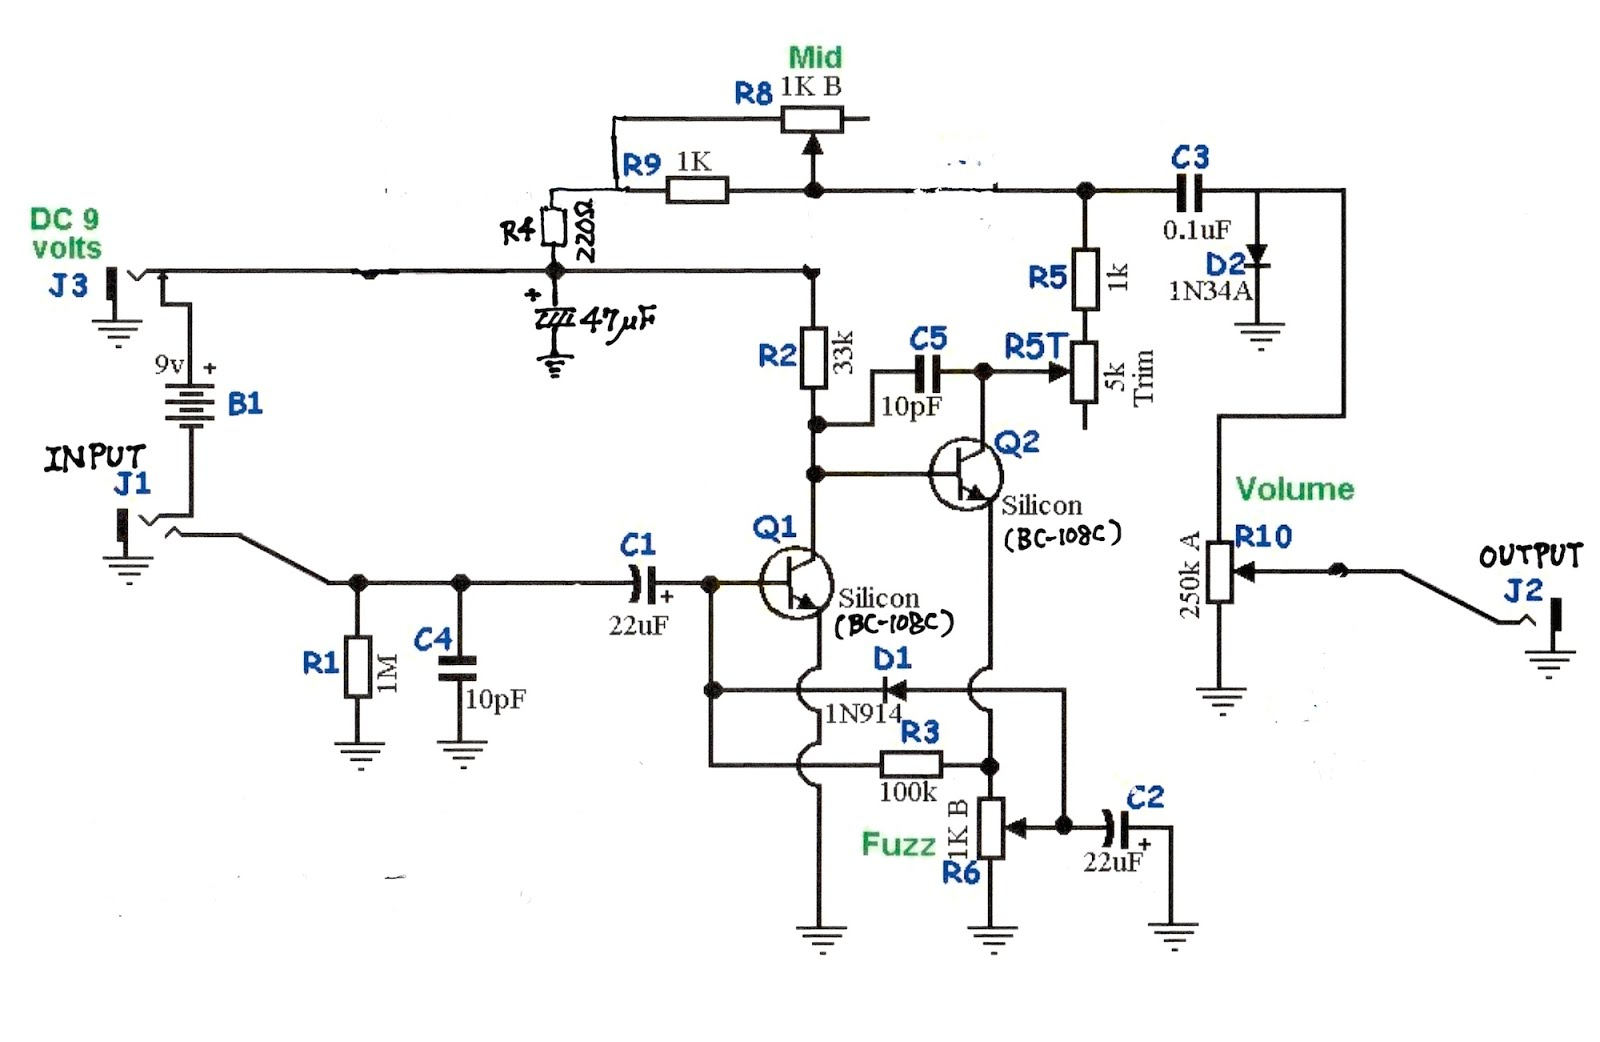 %256070_BC108C Xotic Rc Booster Schematic on brian may fryer treble, bass treble, antenna amplifier, fryer treble, maestro full range, electronic brake, for brian may treble,